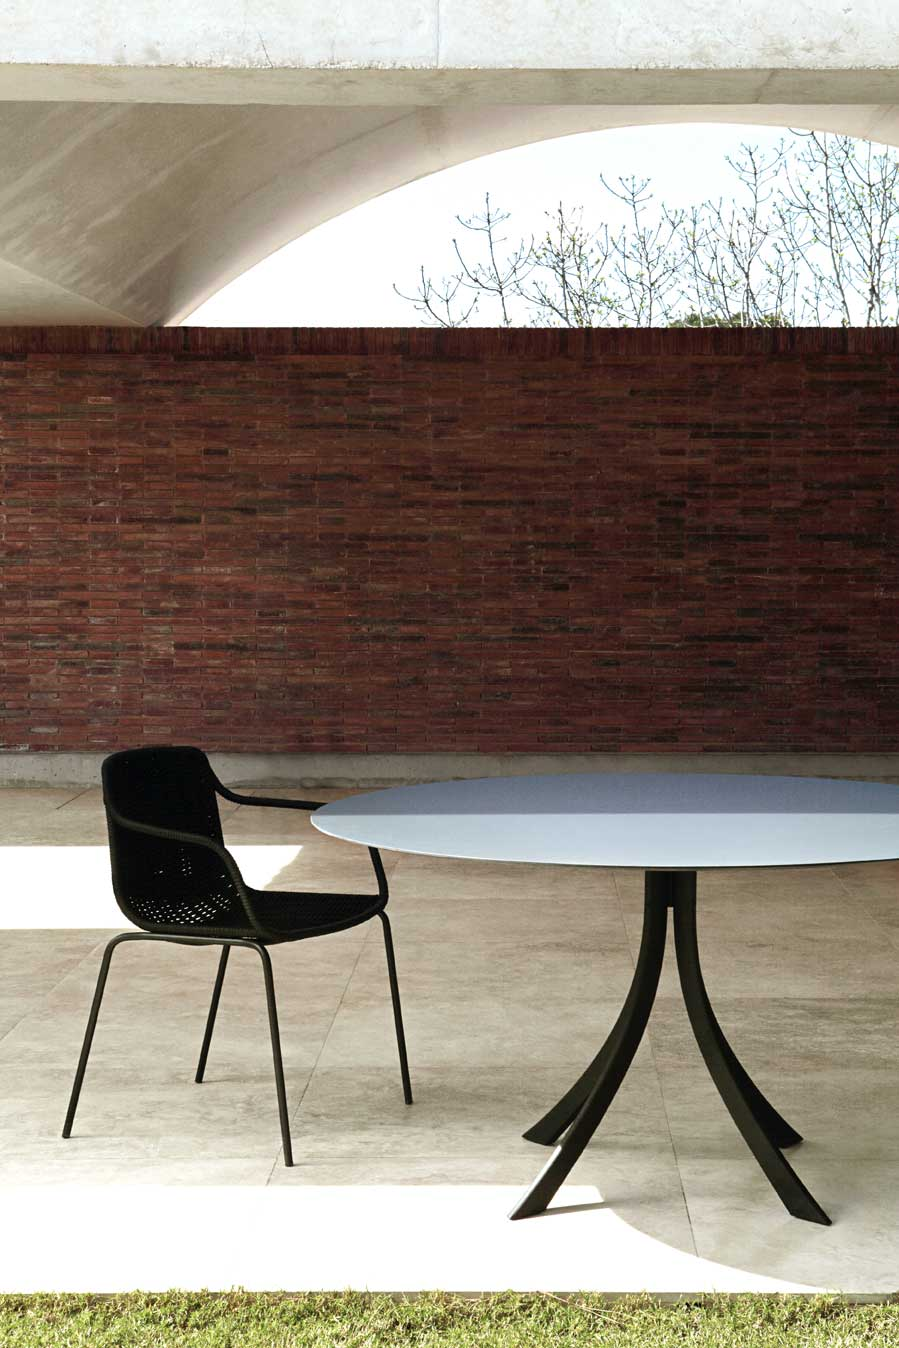 dissenycv.es-expormim-Falcata-dining-table-by-Lievore-Altherr-Molina-01